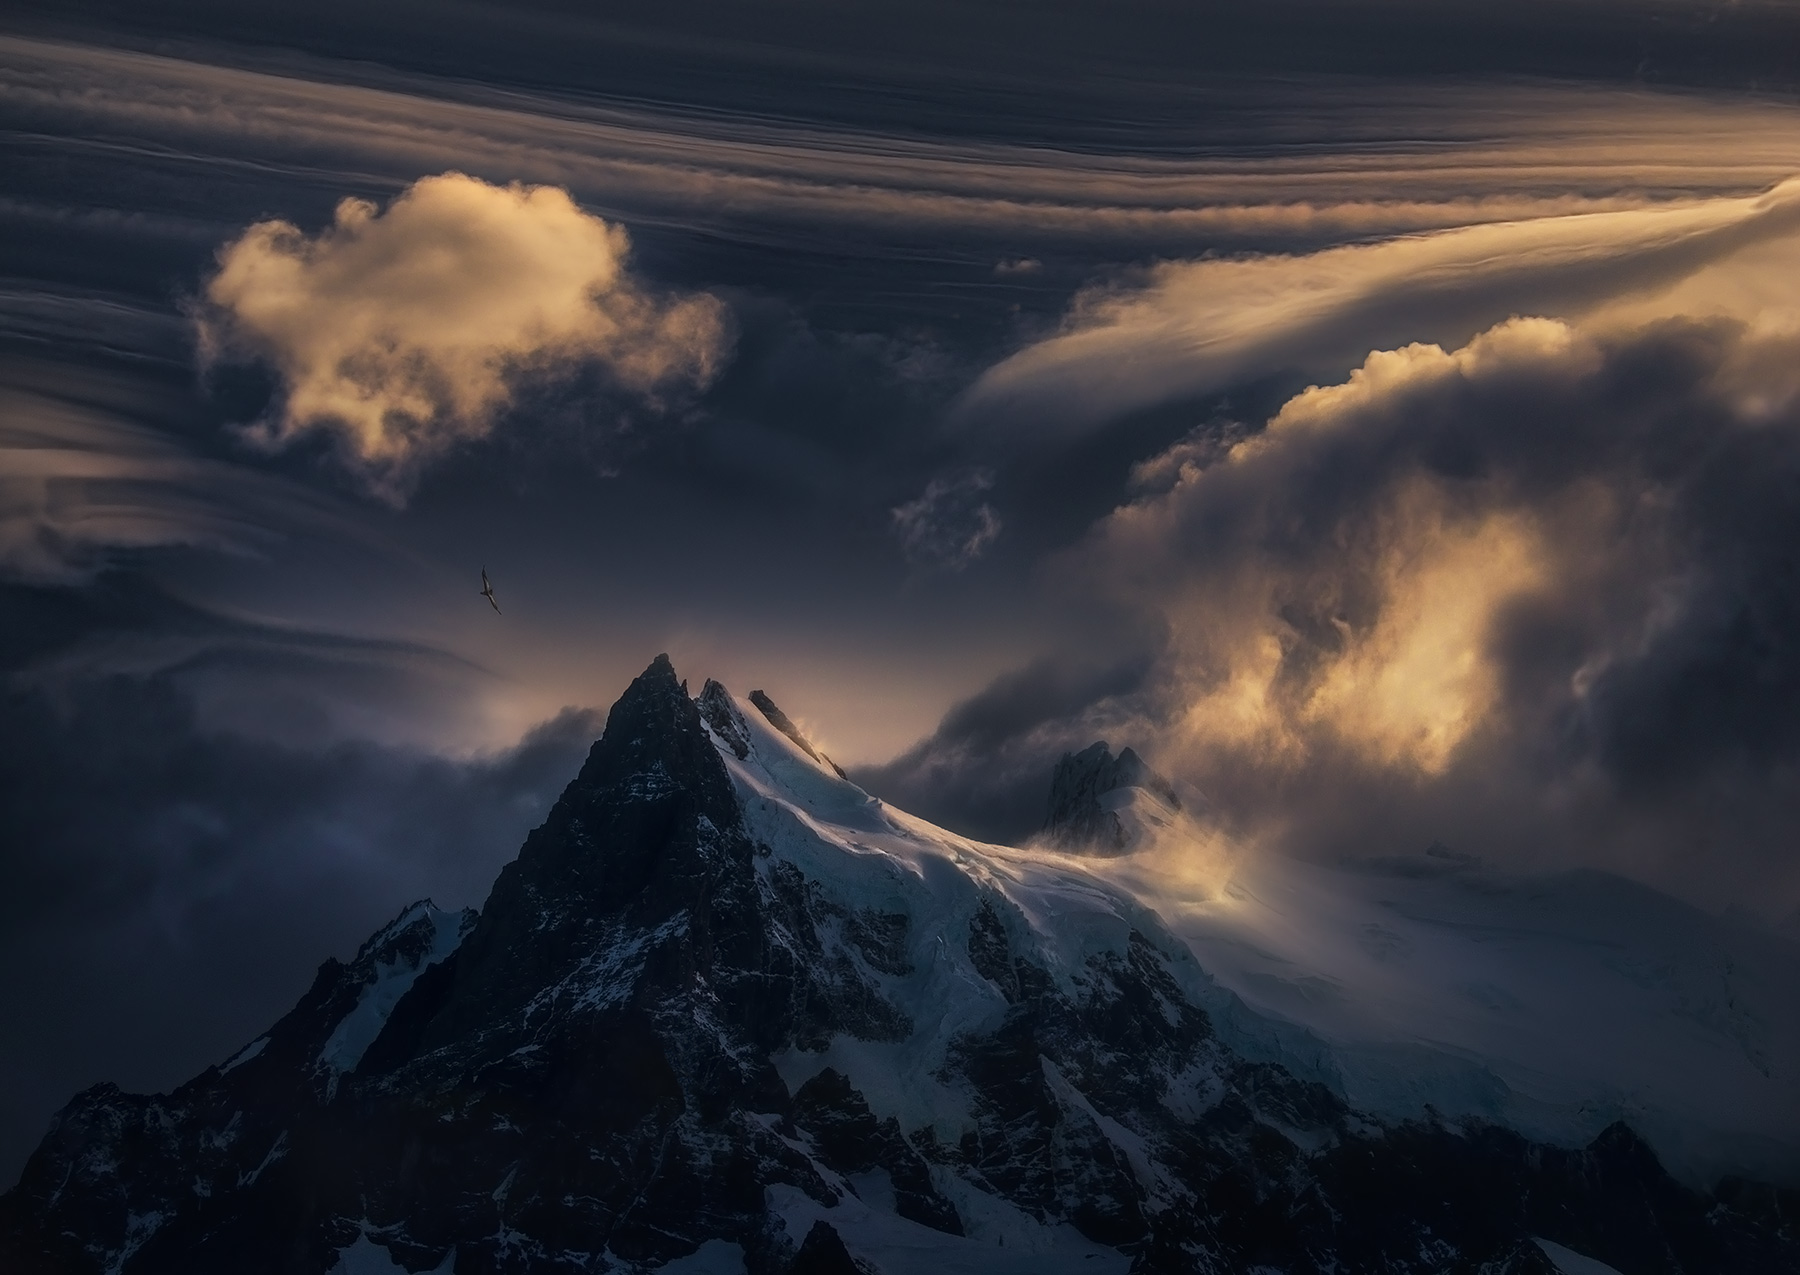 mountain, condor, storm, freedom, winds, alone, photo